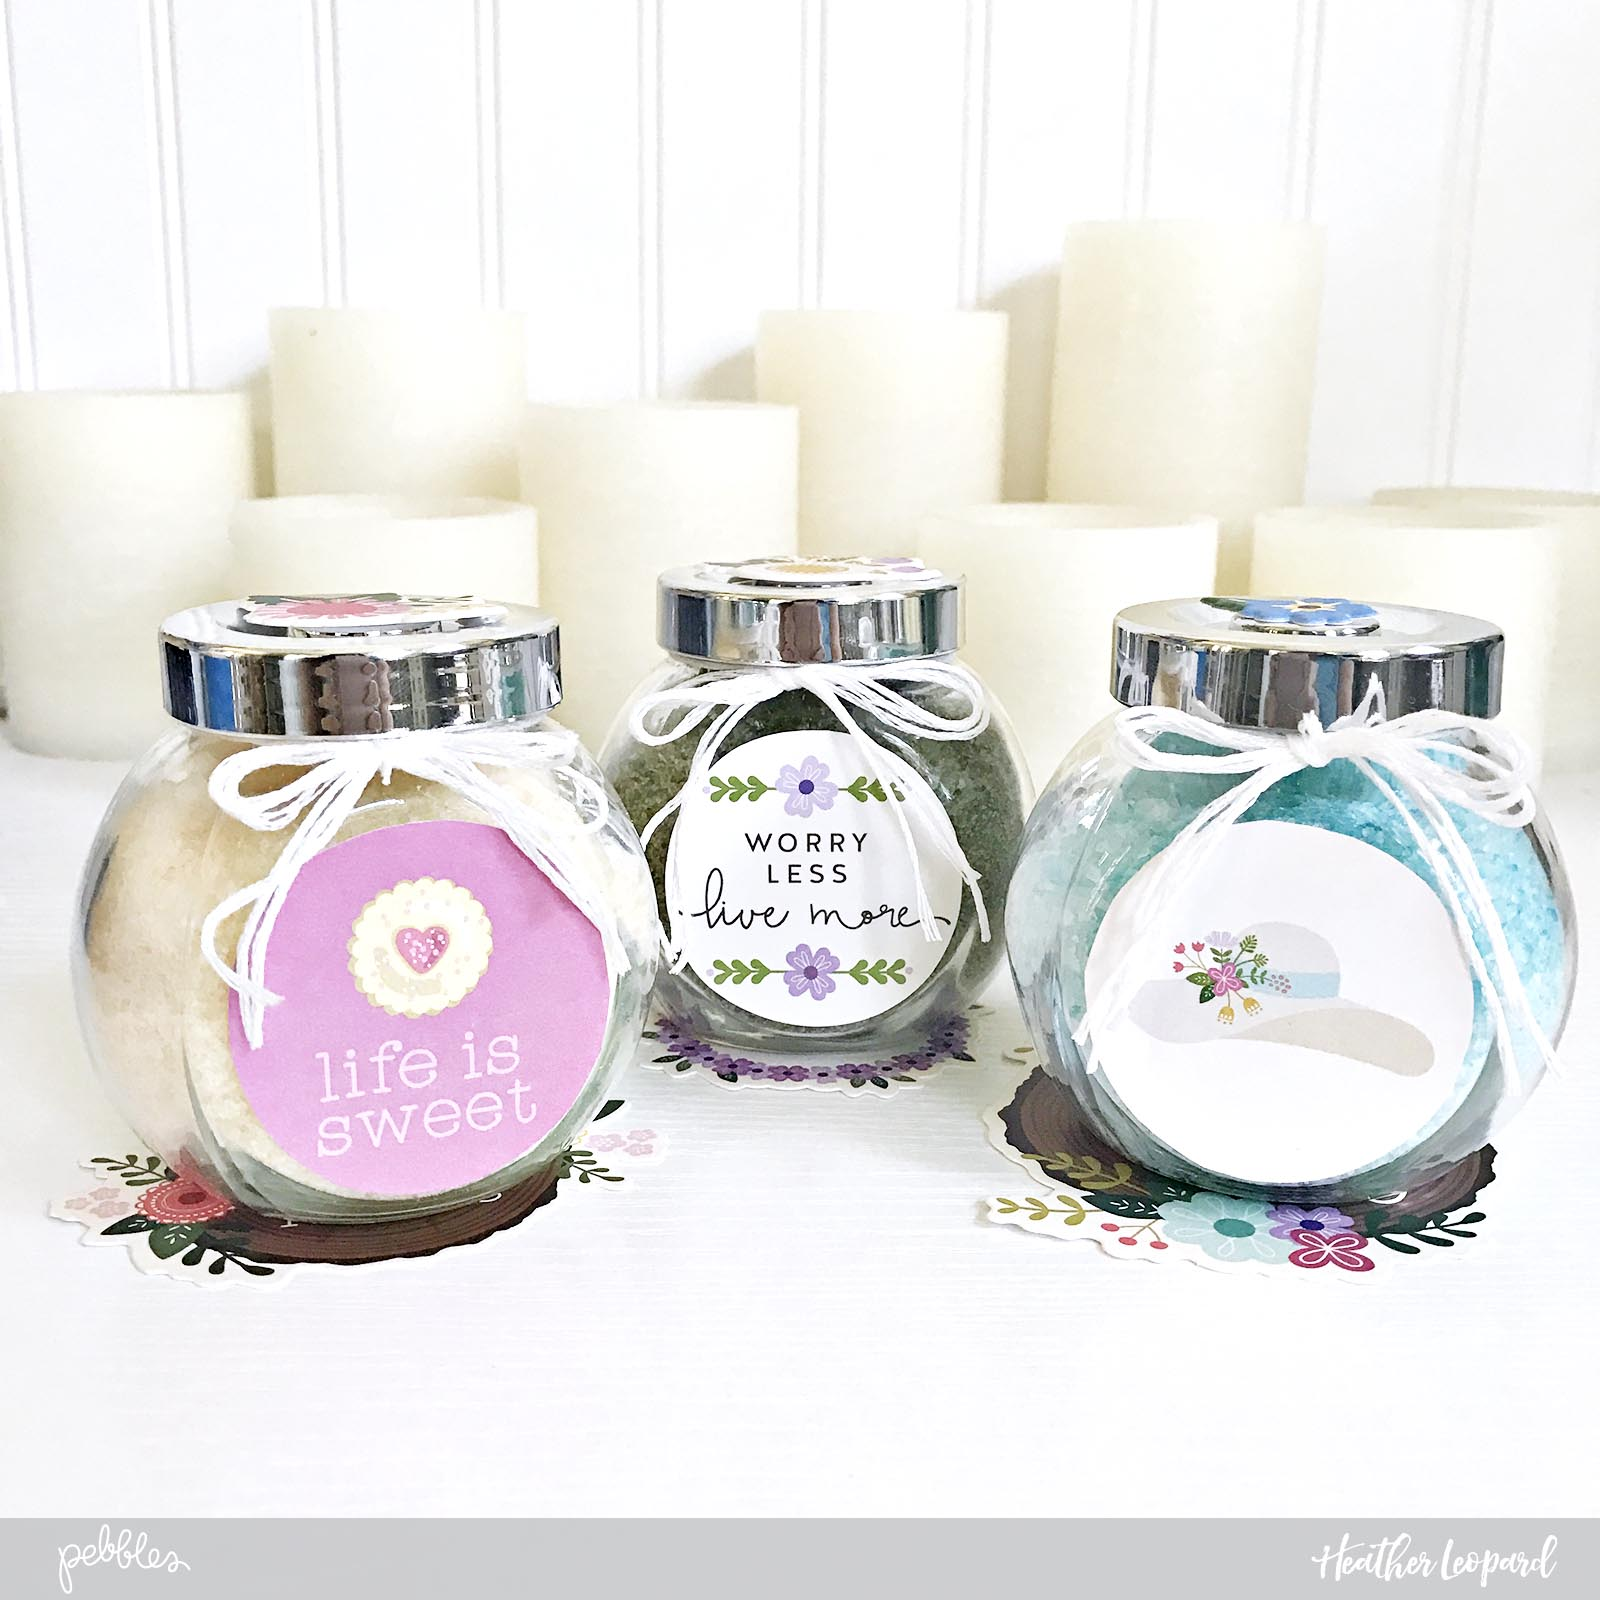 Bath Salts are perfect for a relaxing Mother's Day pampering. @heatherleopard shows you how to make these DIY Mother's Day gift at home using the #tealightful collection by @pebblesinc